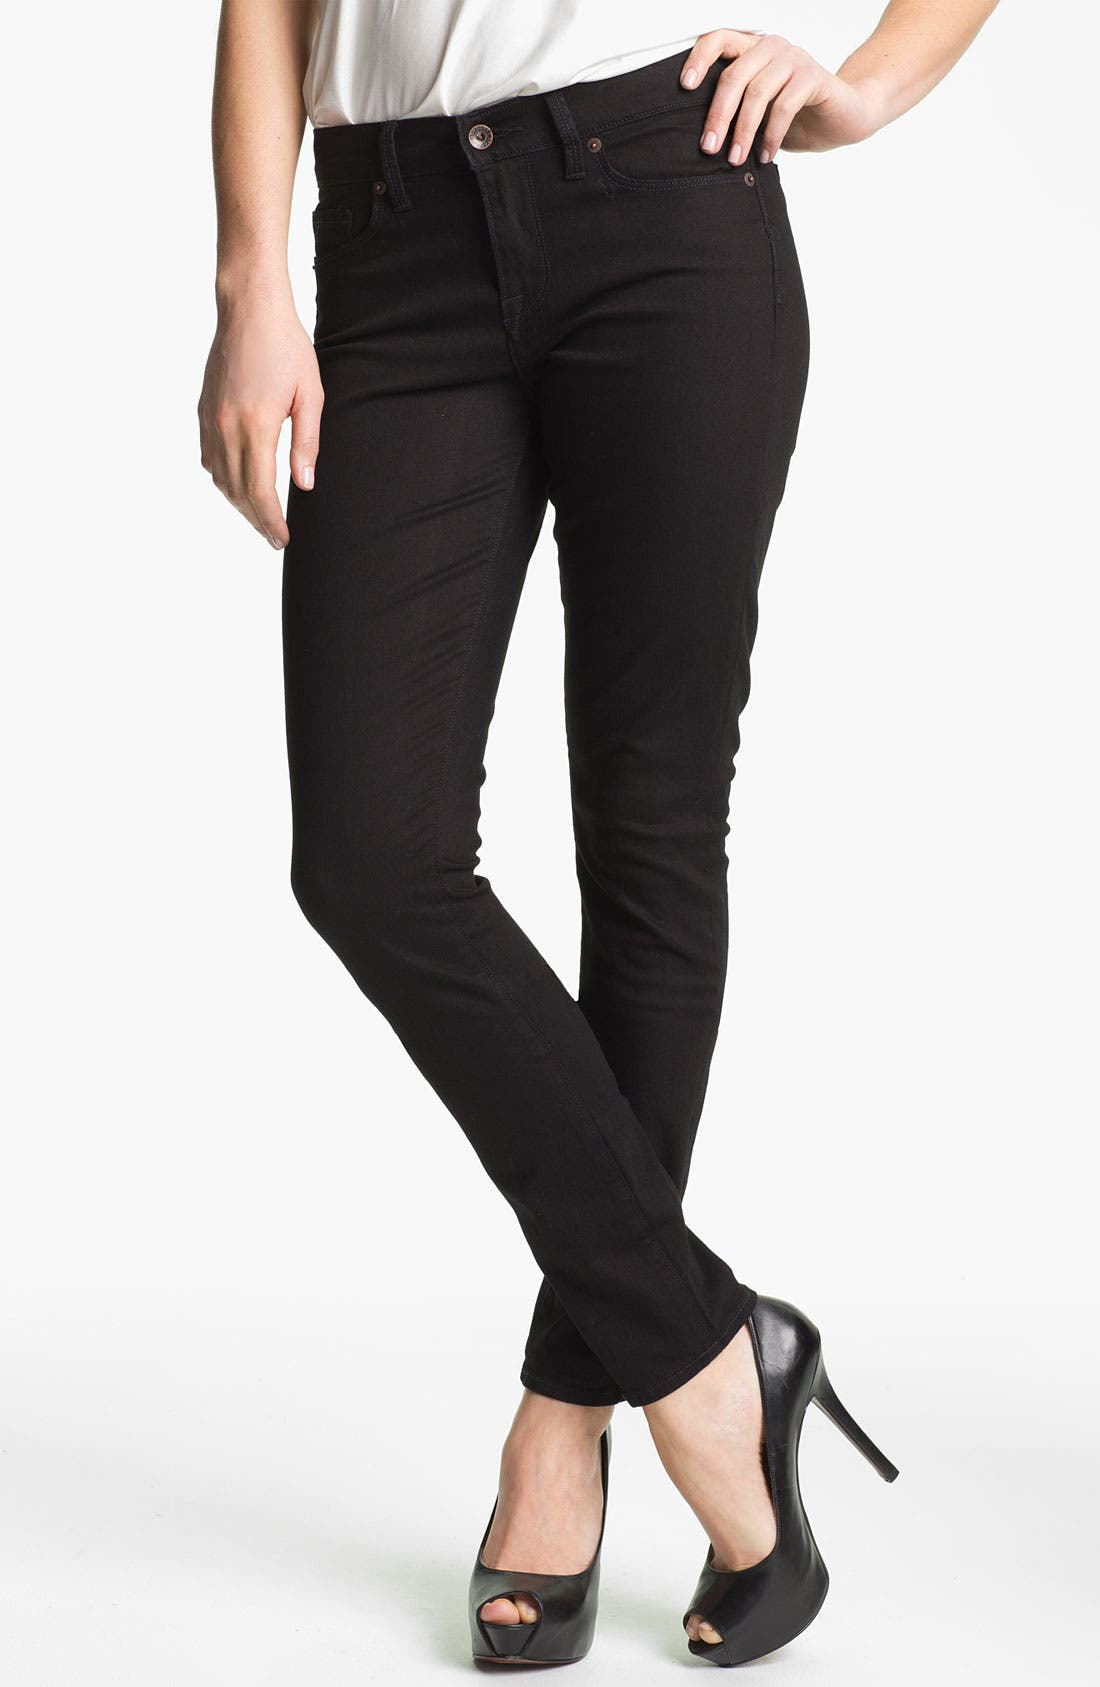 Main Image - Lucky Brand 'Sofia' Skinny Jeans (Black) (Online Exclusive)